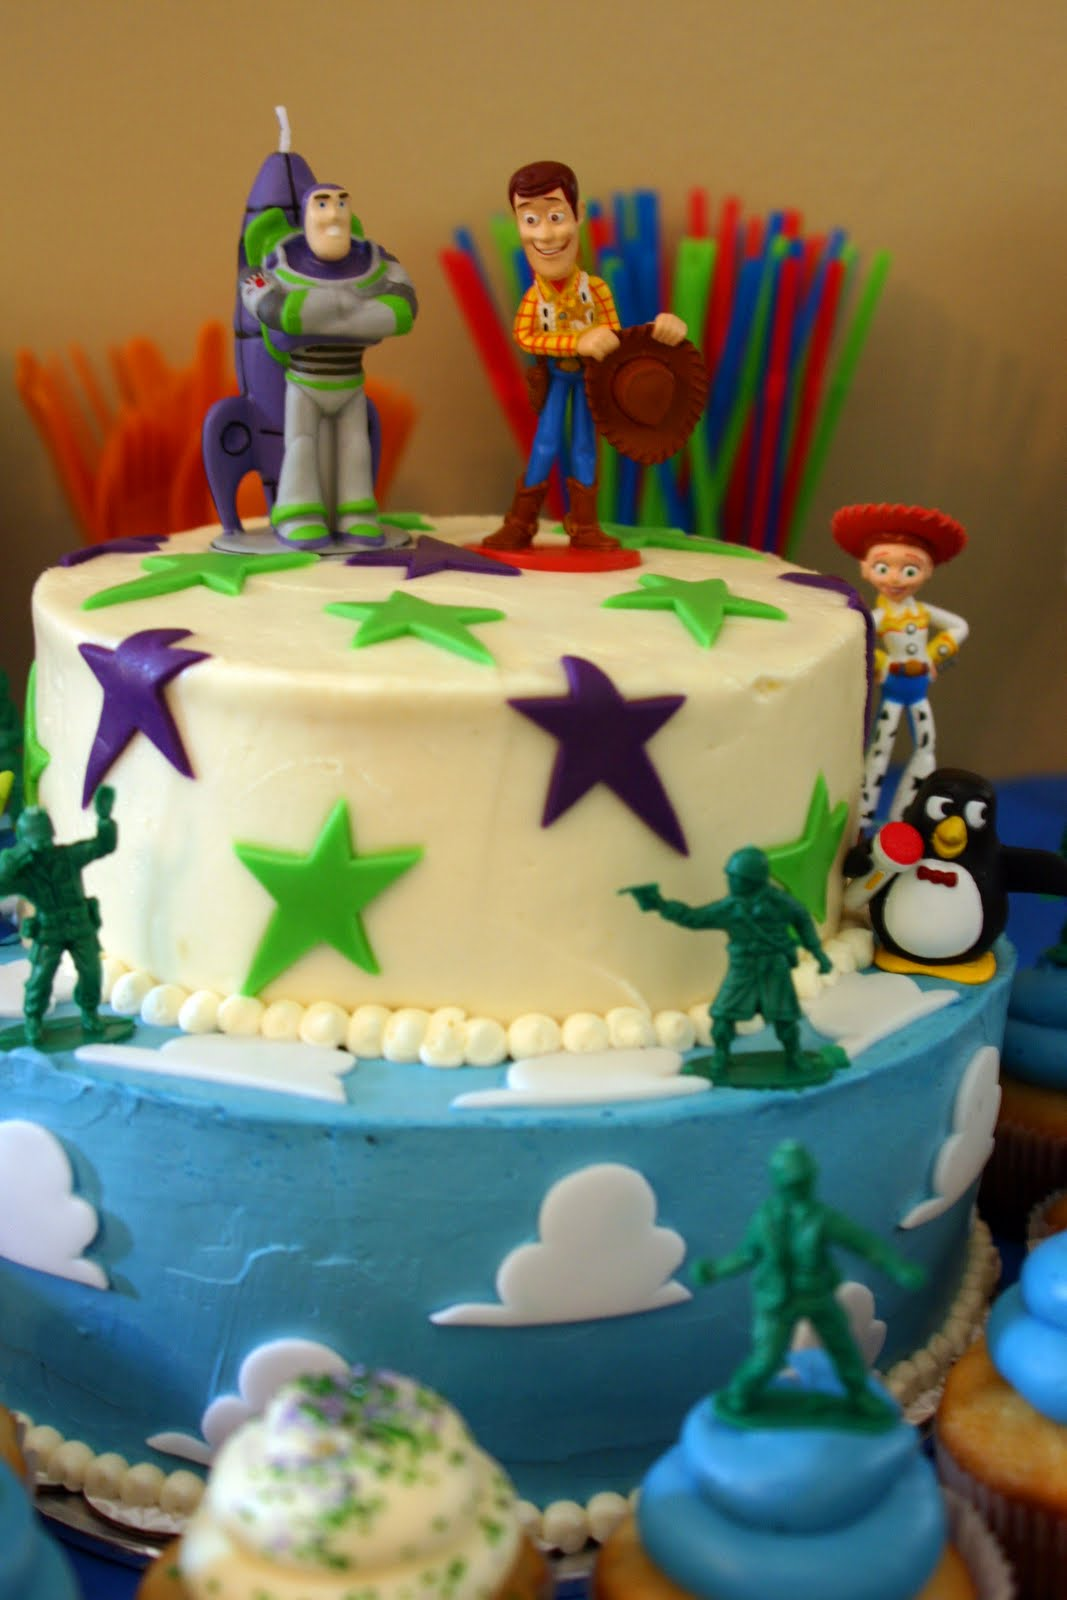 Toy Story Party Ideas Decorations : Toy story cakes decoration ideas little birthday